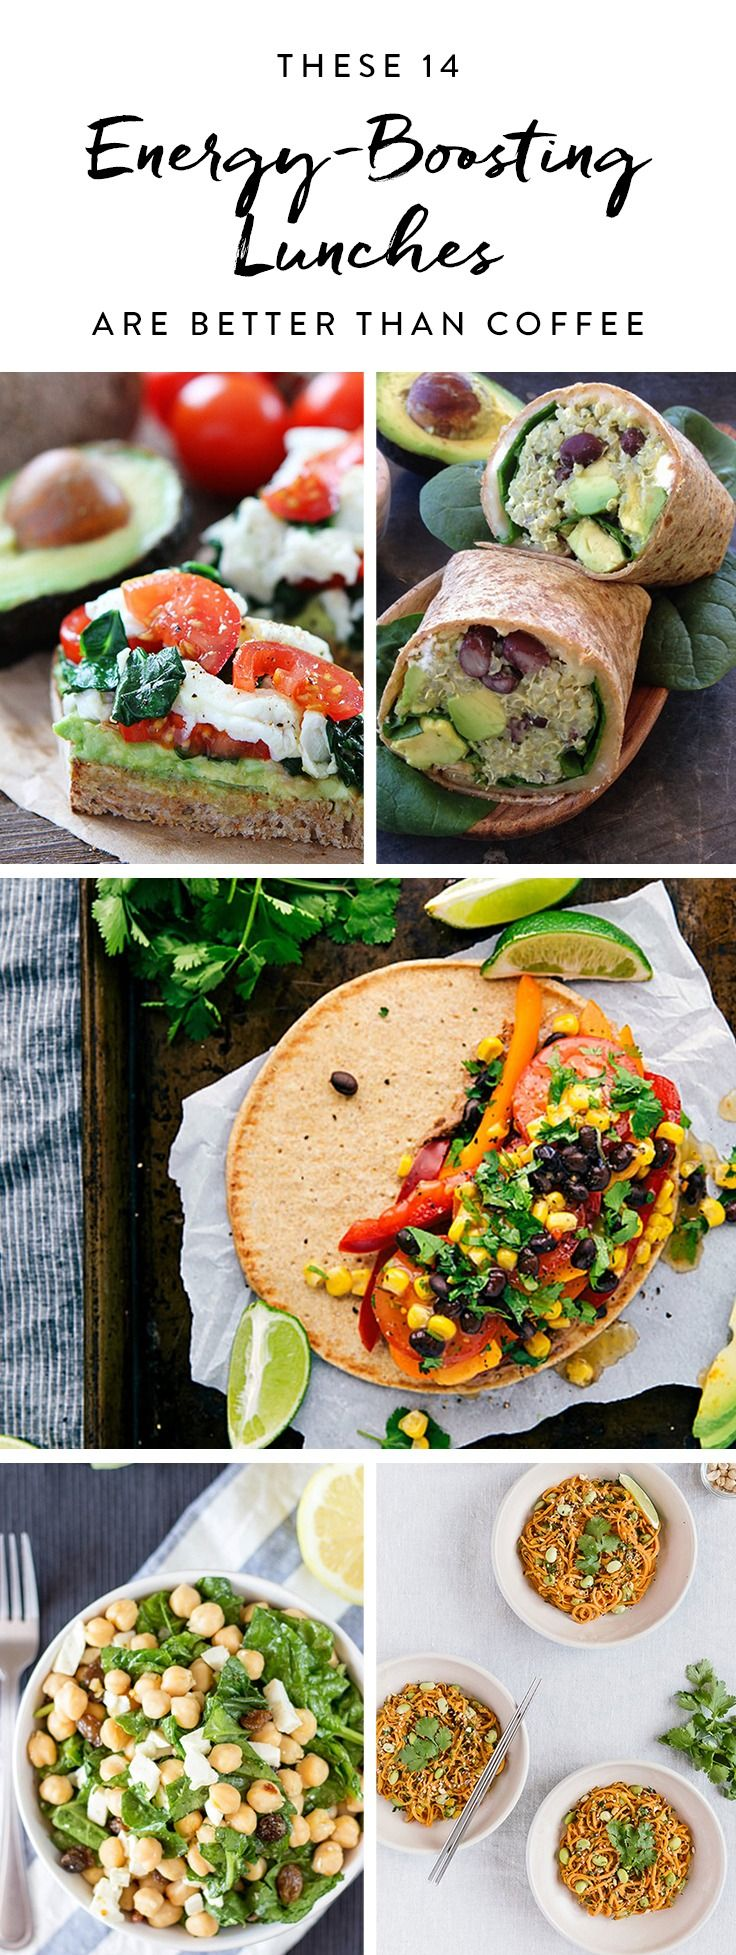 Try these energy-boosting lunch recipes designed to give you more energy than coffee and leave you ready to tackle the rest of the day.